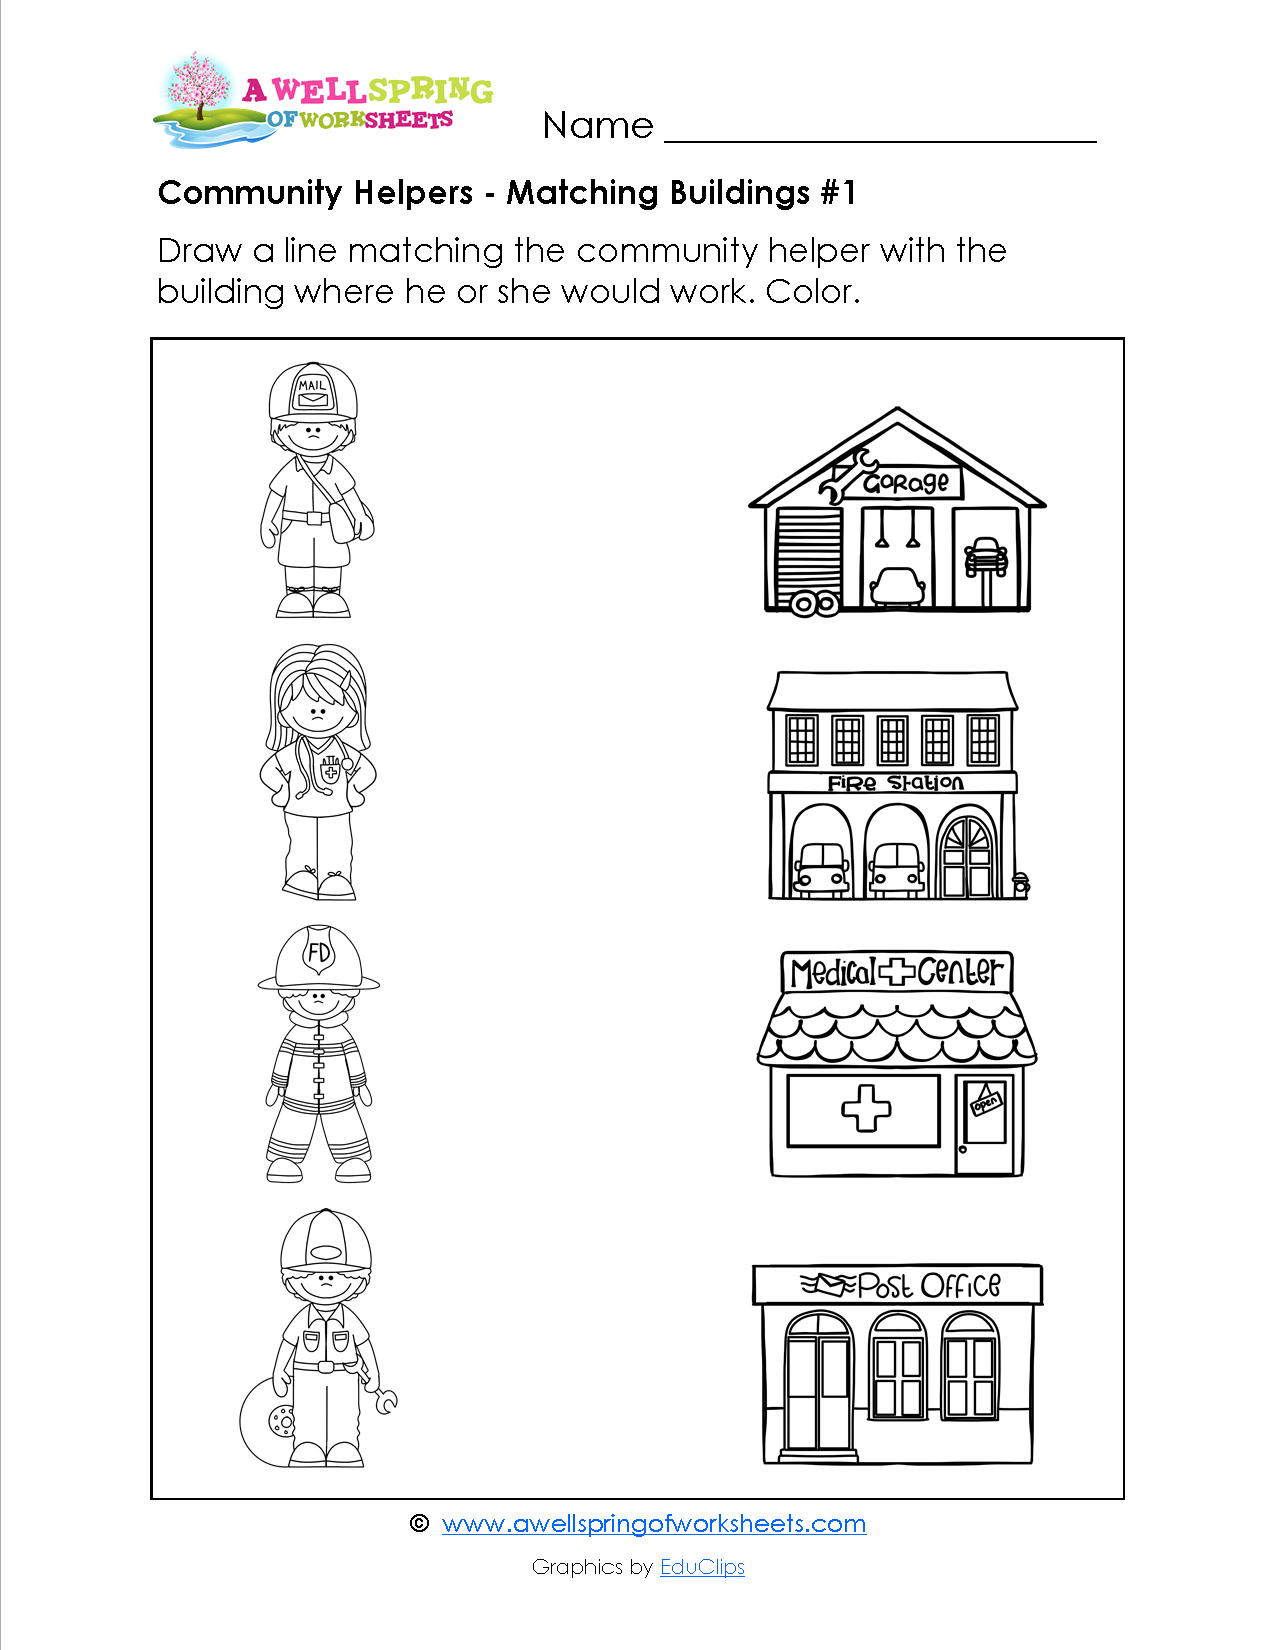 Worksheets Educational Worksheets For Preschoolers community helpers matching worksheets in these kids draw a line from the helper